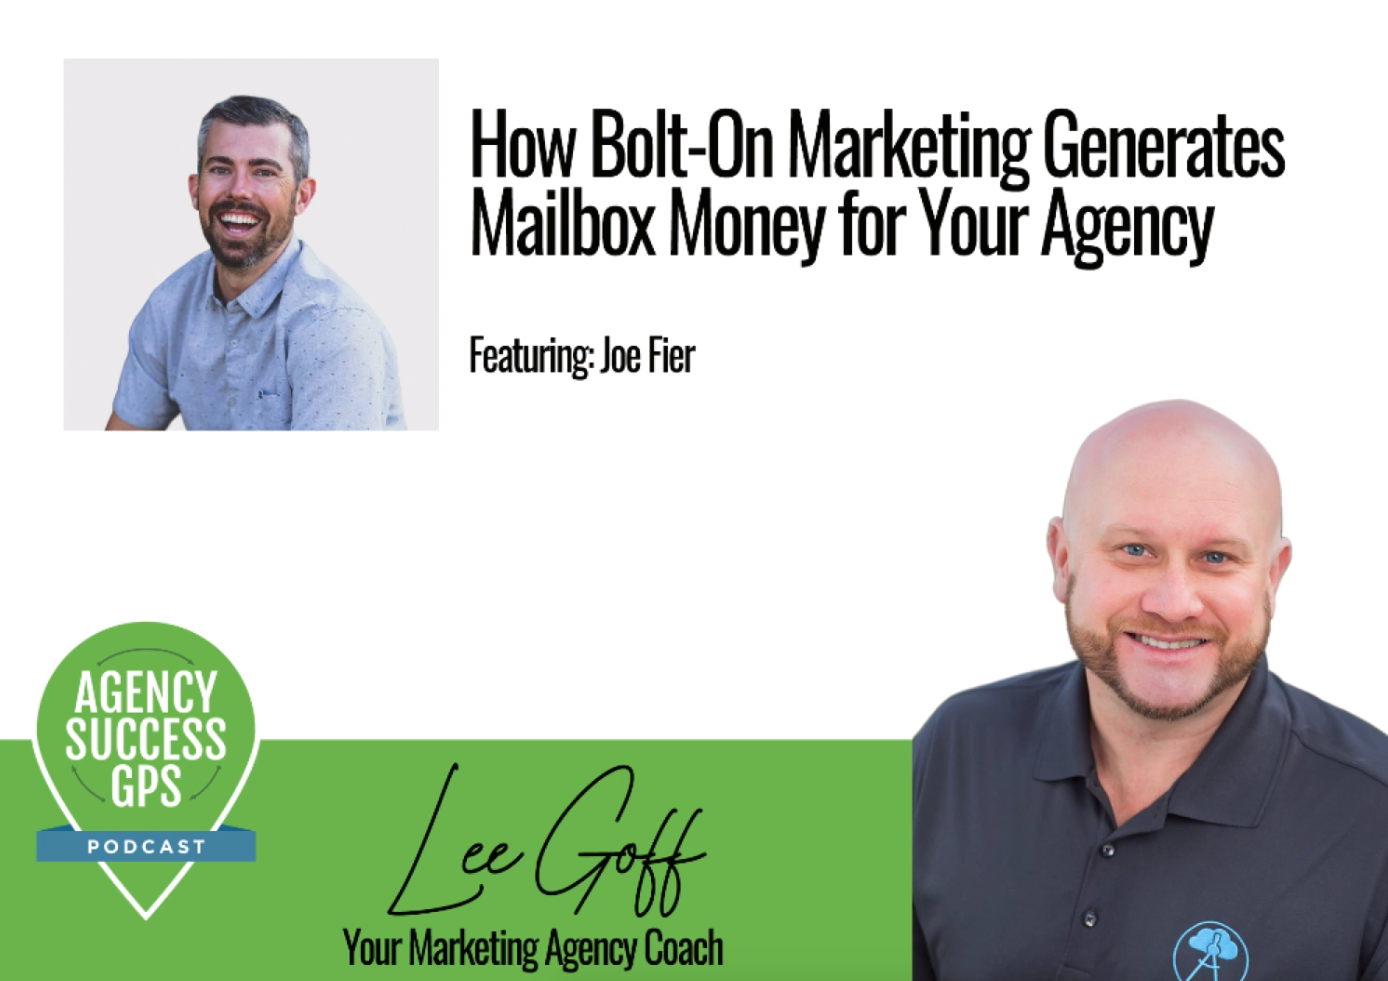 [PODCAST] Joe Fier – How Bolt On Marketing Creates Mailbox Money for Your Agency!